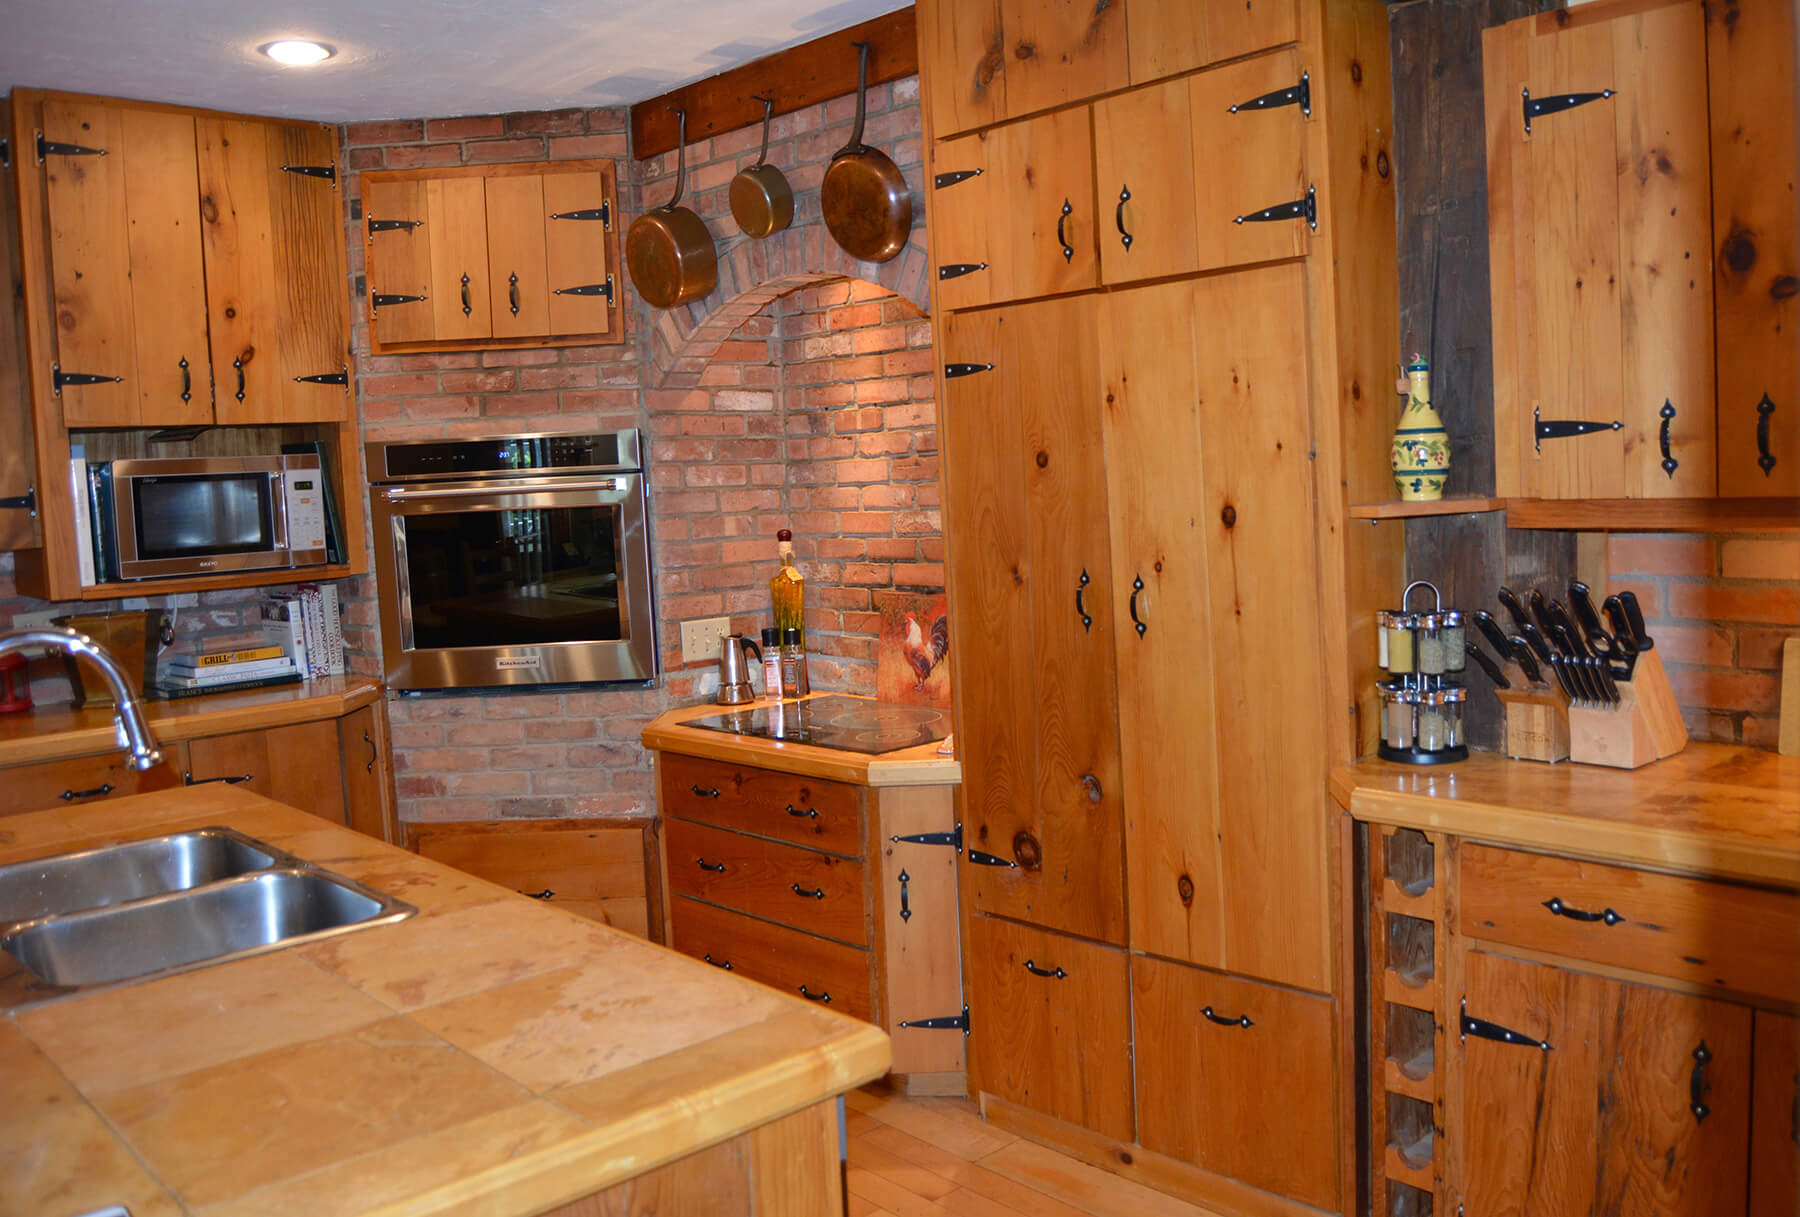 Avalon Kitchen brick stove and oven, wood cupboards, island sink